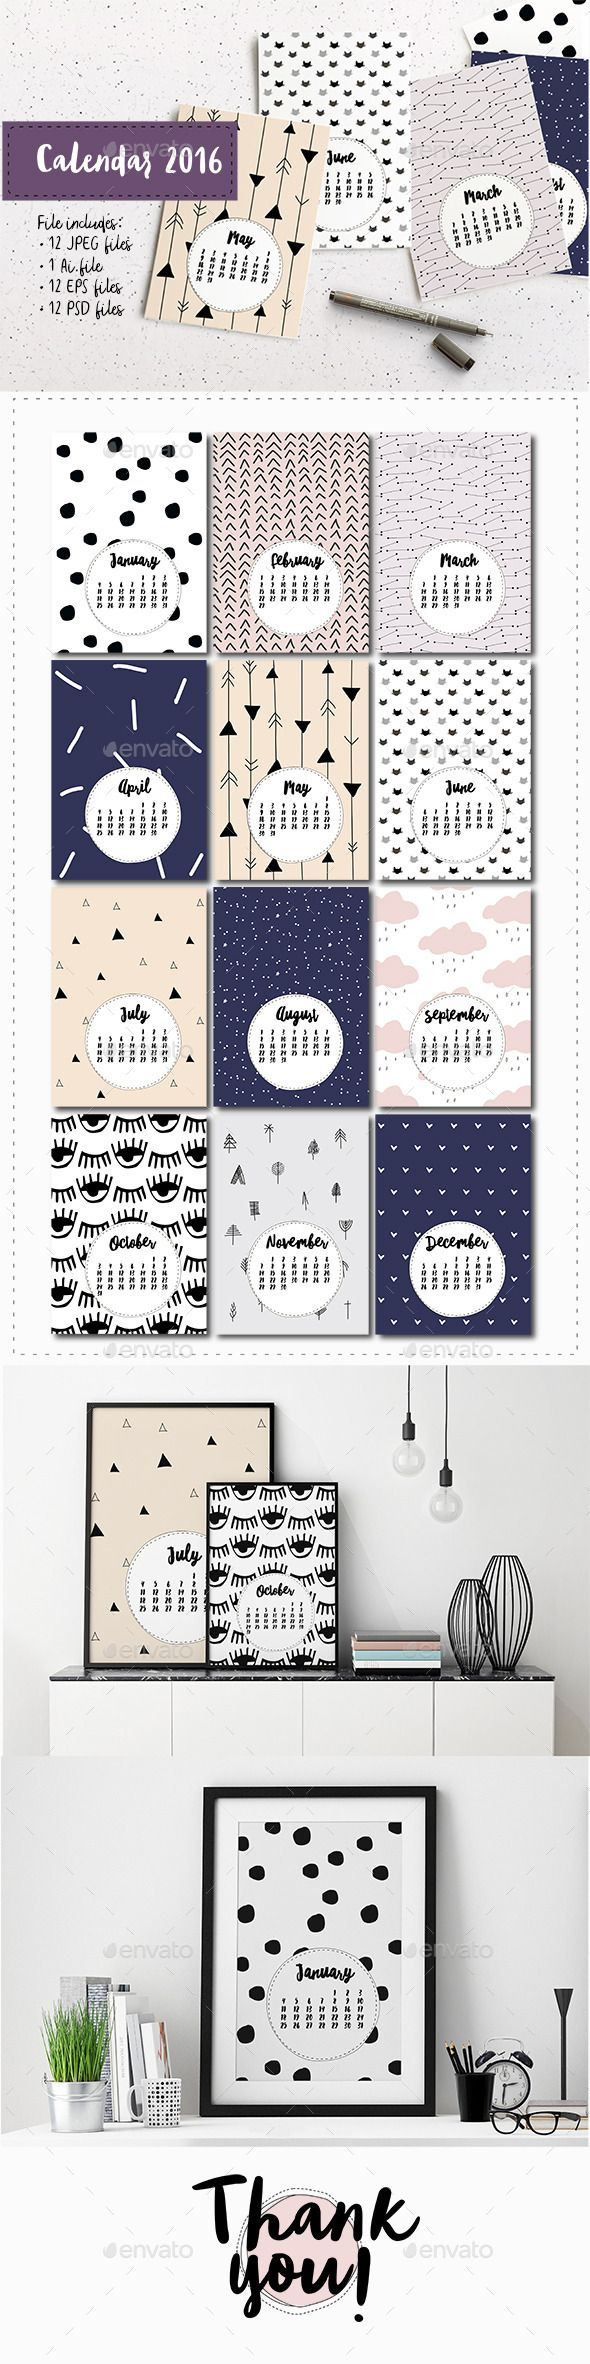 Cute Vector Calendar 2016 Template PSD, Vector EPS, AI #design Download: http://graphicriver.net/item/cute-vector-calendar-2016-template/13812323?ref=ksioks